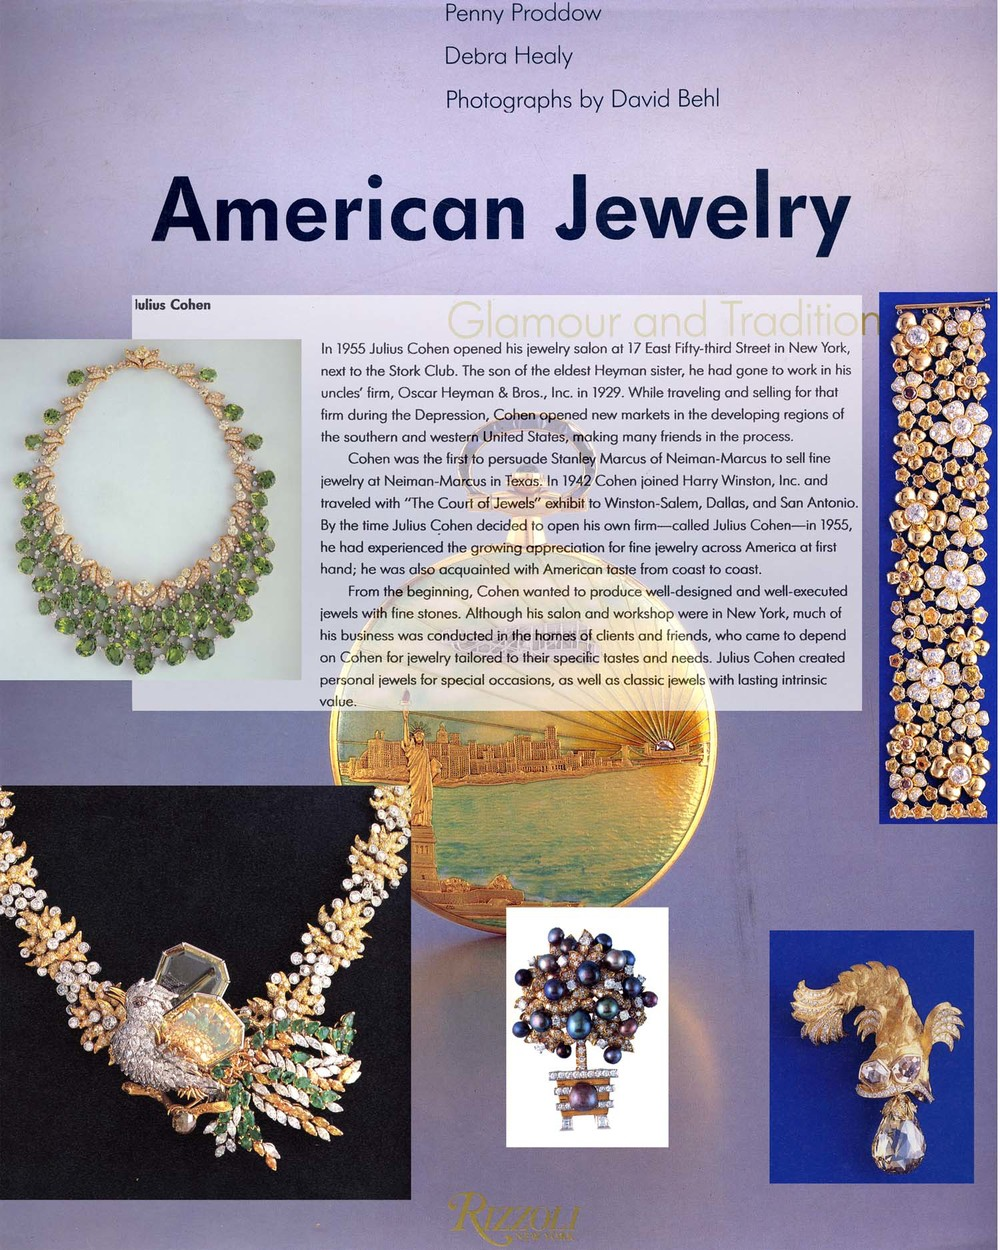 American Jewelry Page copy.jpg